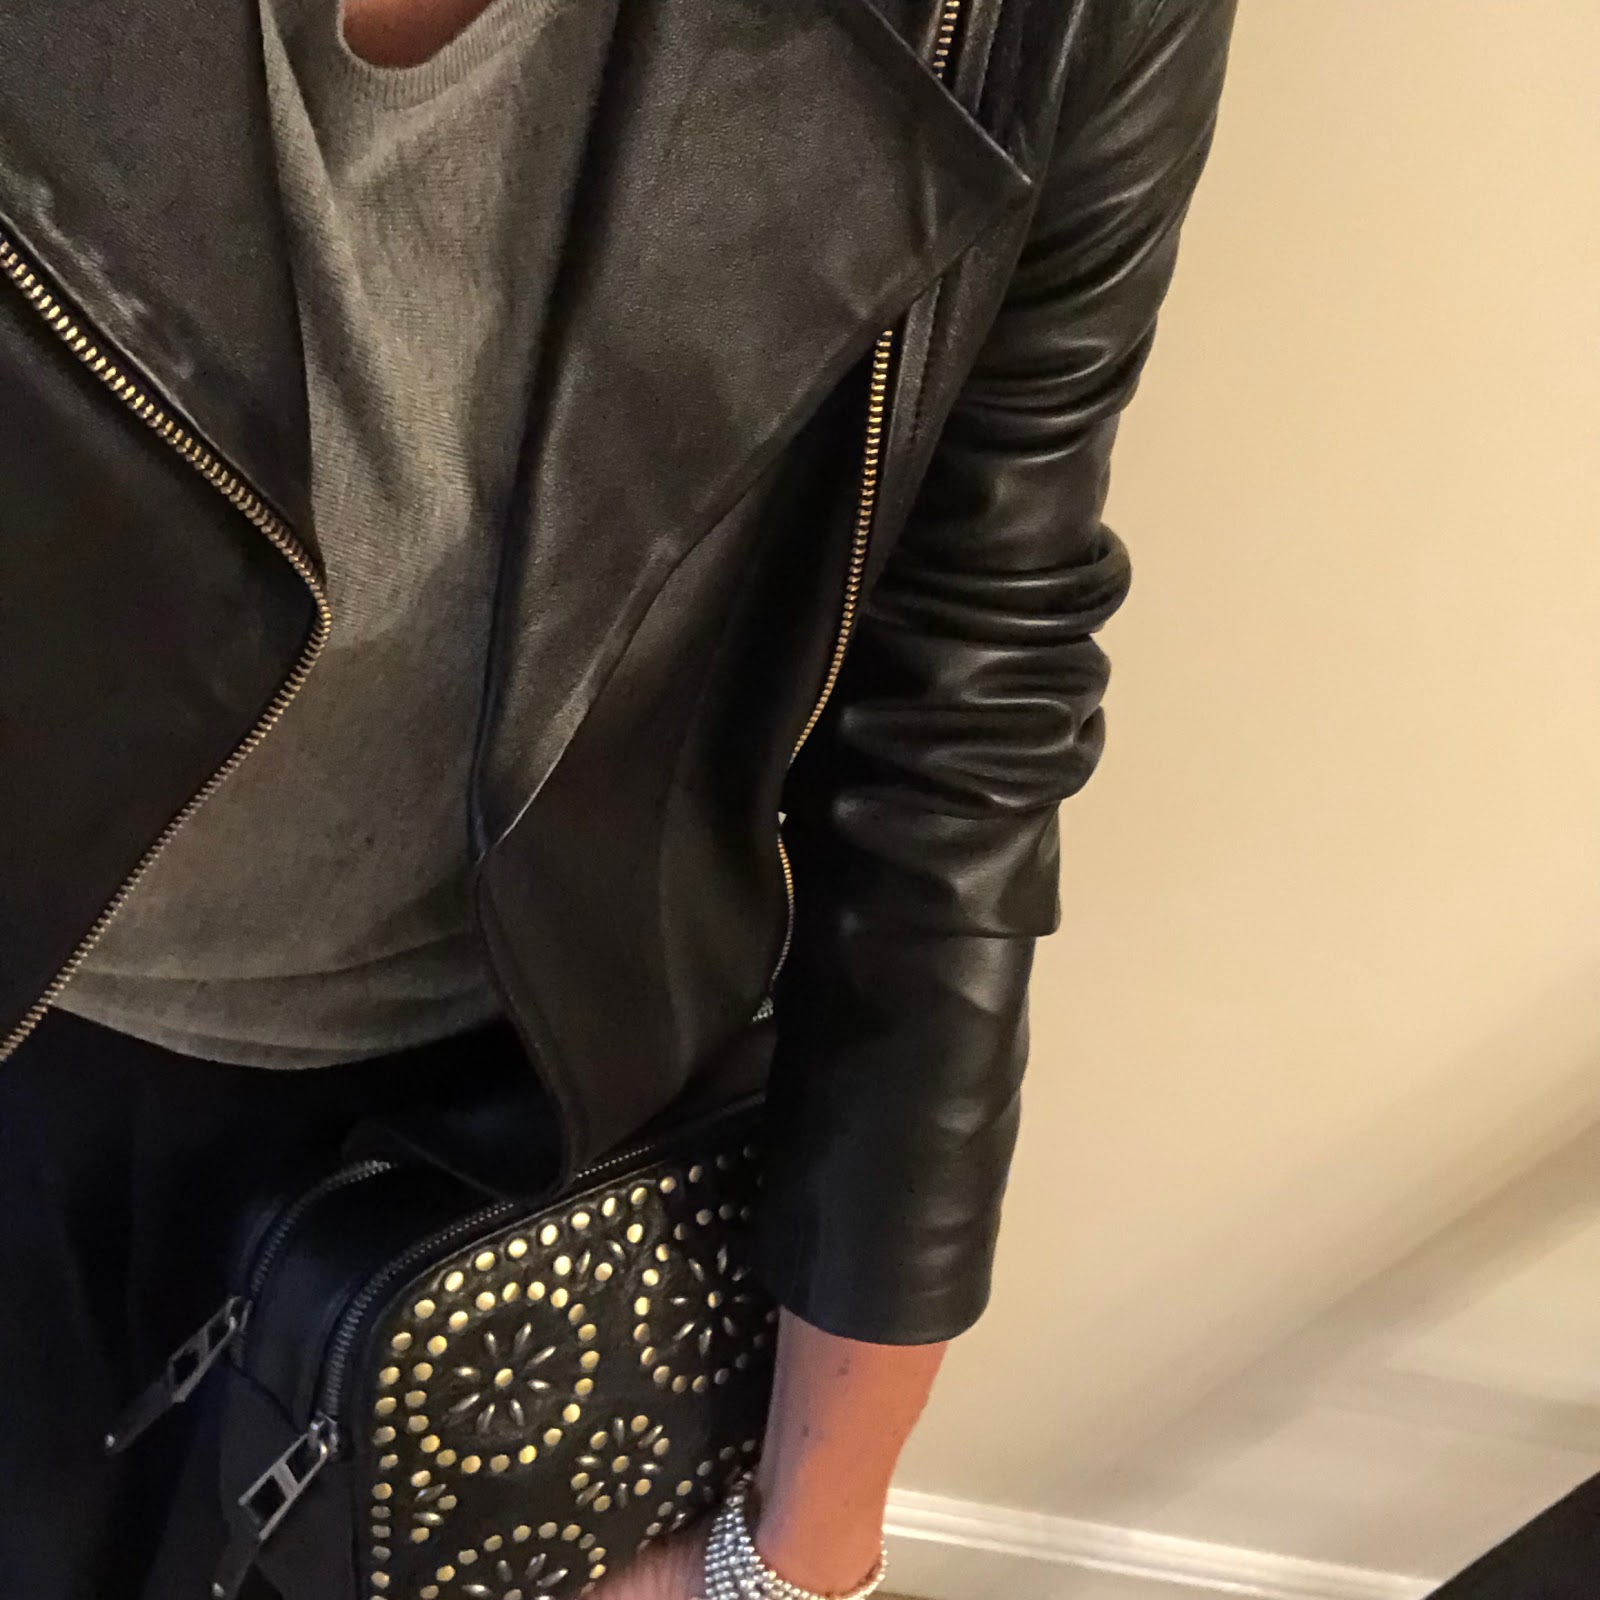 my midlilfe fashion, baukjen everyday leather biker jacket, baukjen ella batwing jumper, marks and spencer asymmetric maxi skirt, village england penshaw bag, golden goose superstar low top leather trainers